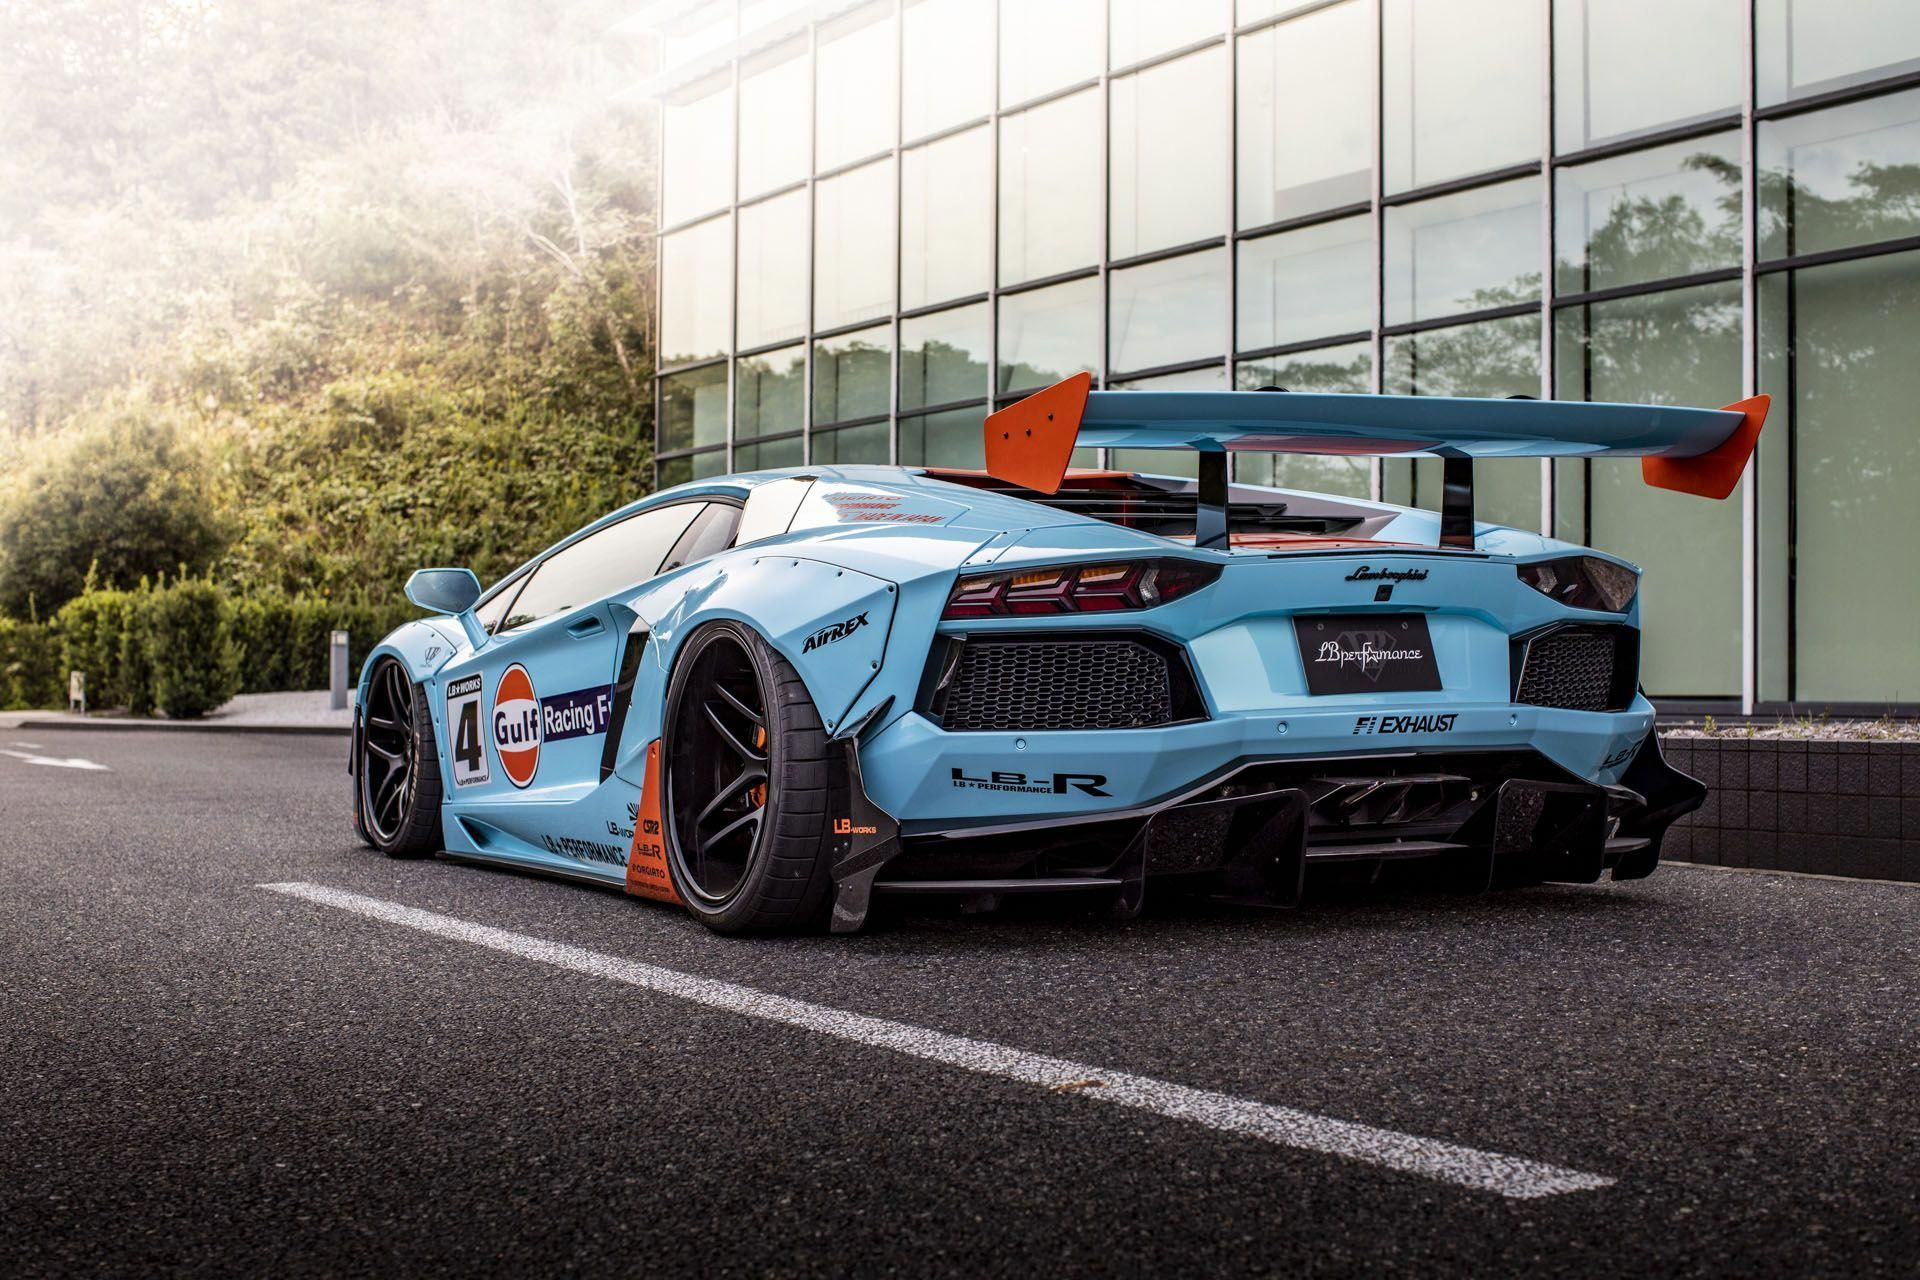 Lamborghini Aventador Looks Surprisingly Right In Gulf Livery | Carscoops #newsportscarsluxurysportcarnewsportscarsnicesportscarssportscarsbeautifulsupersportcarbestsportscarsexoticcarsexoticcarsdreamsfastsports cars  luxury  car quotes  living in car  car ride quotes  decorating car  car rides  on car  in the car car ideas#cars #carsofinstagram #CarsWithOutLimits #carspotting #carstagram #carshow #carsandcoffee #carspotter #carselfie #carsovereverything #carsdaily #carsforsale #carszene #carslo